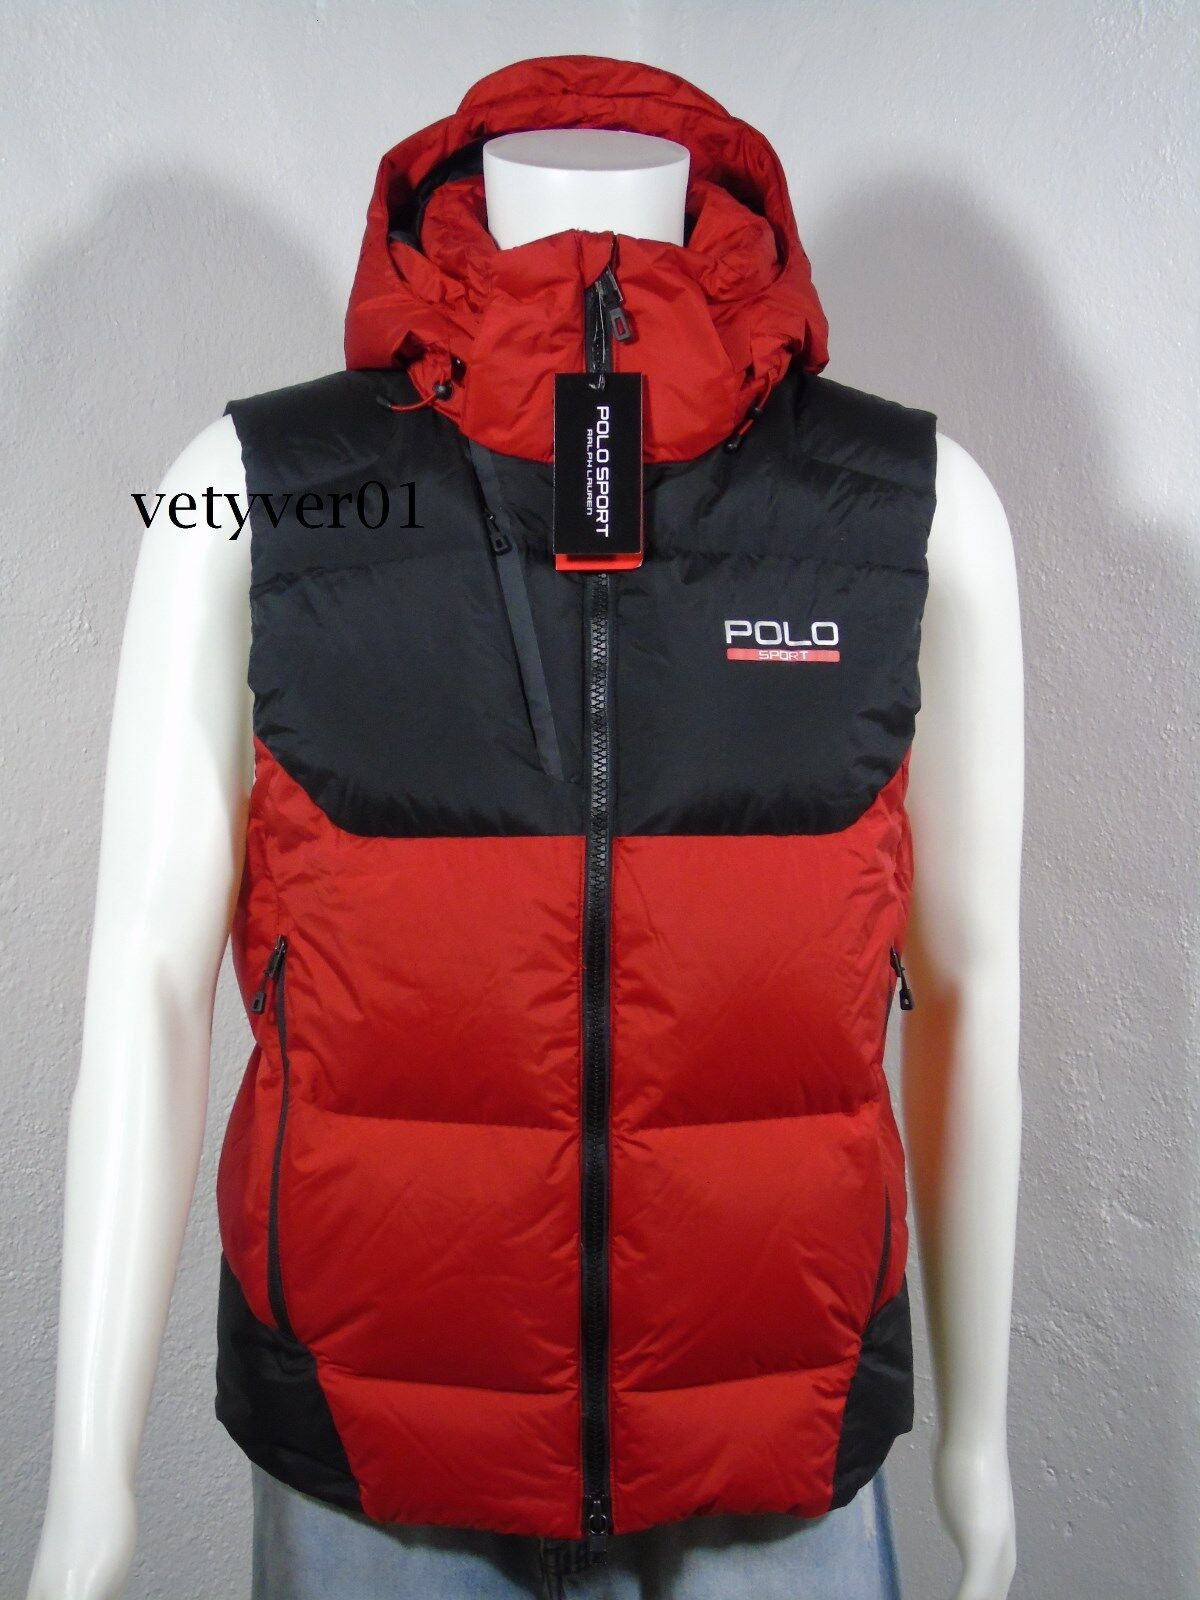 NWT Polo RALPH LAUREN Sport Sideline Down Feathers Removable Hood Vest Red sz M